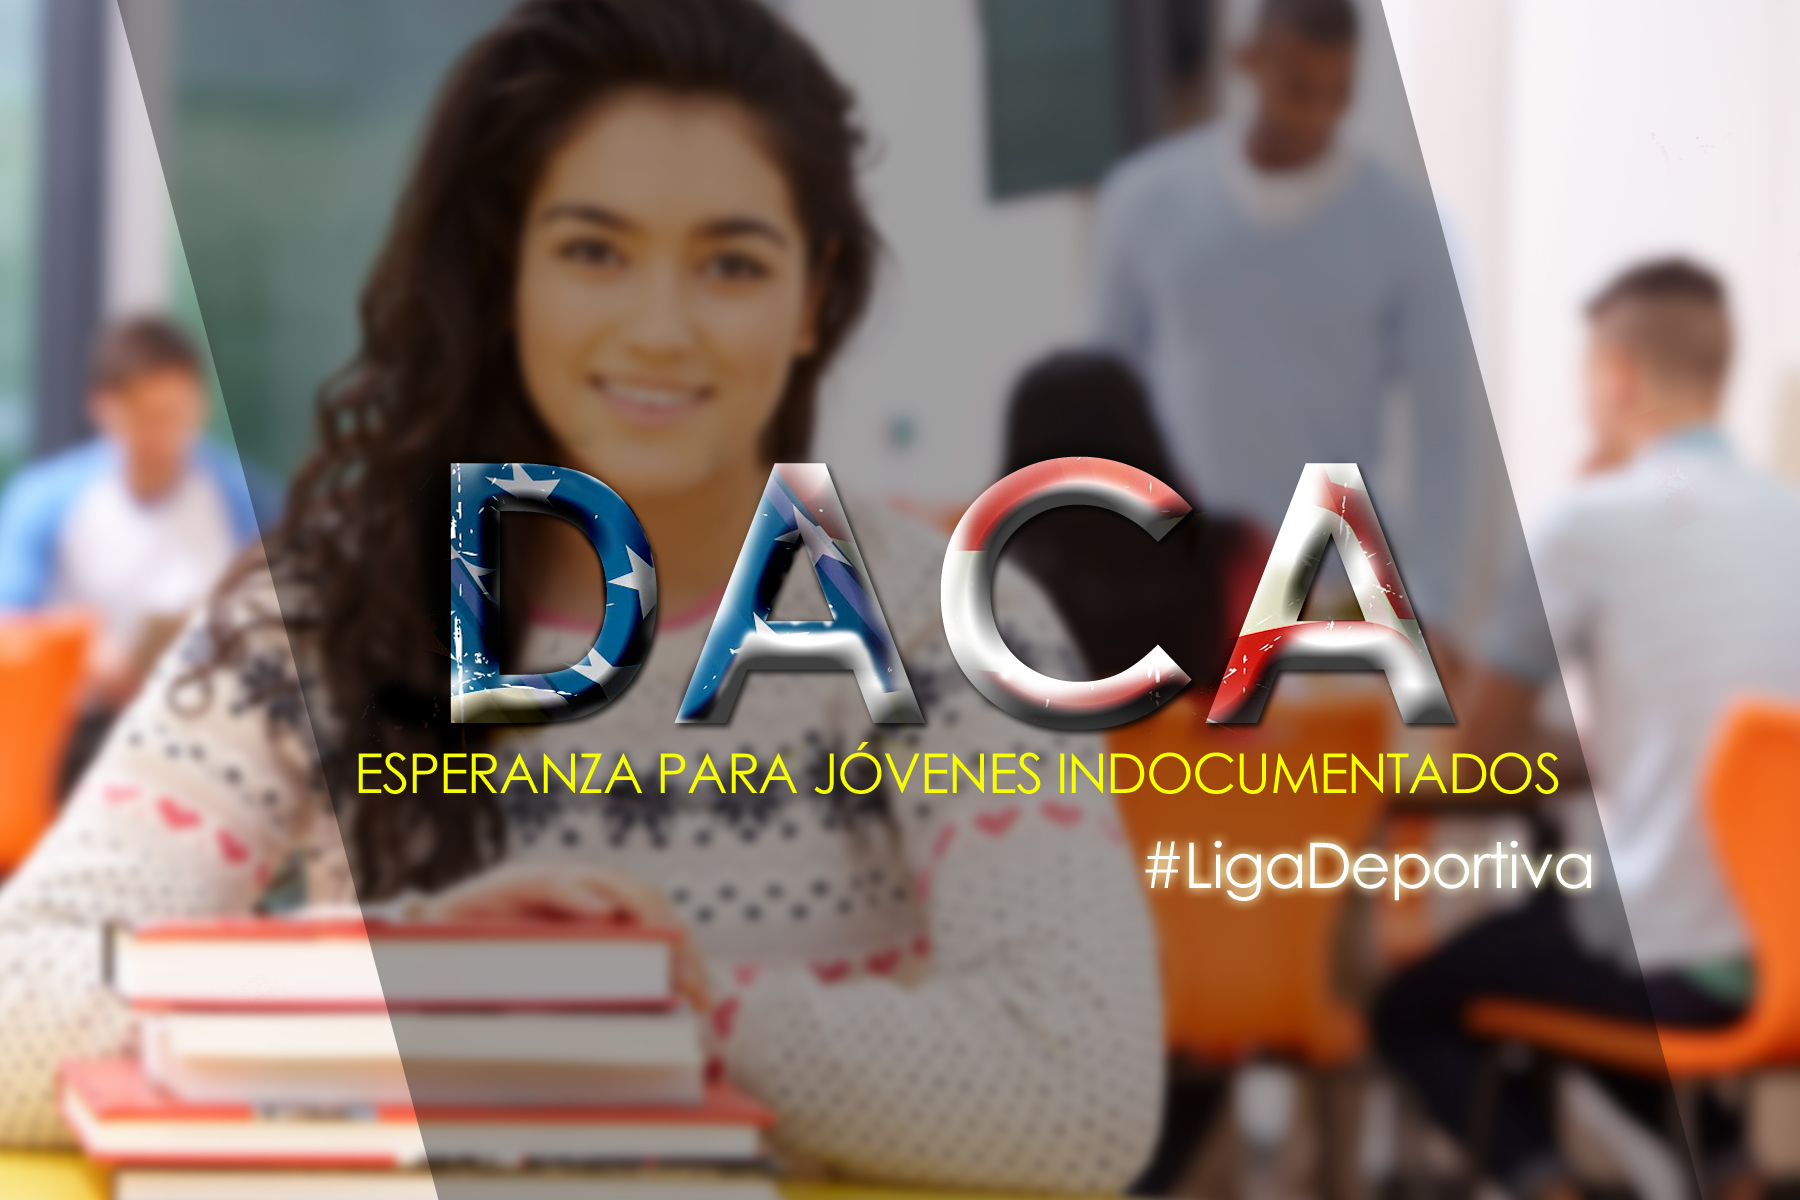 DACA sigue vivo para 700 mil jóvenes indocumentados